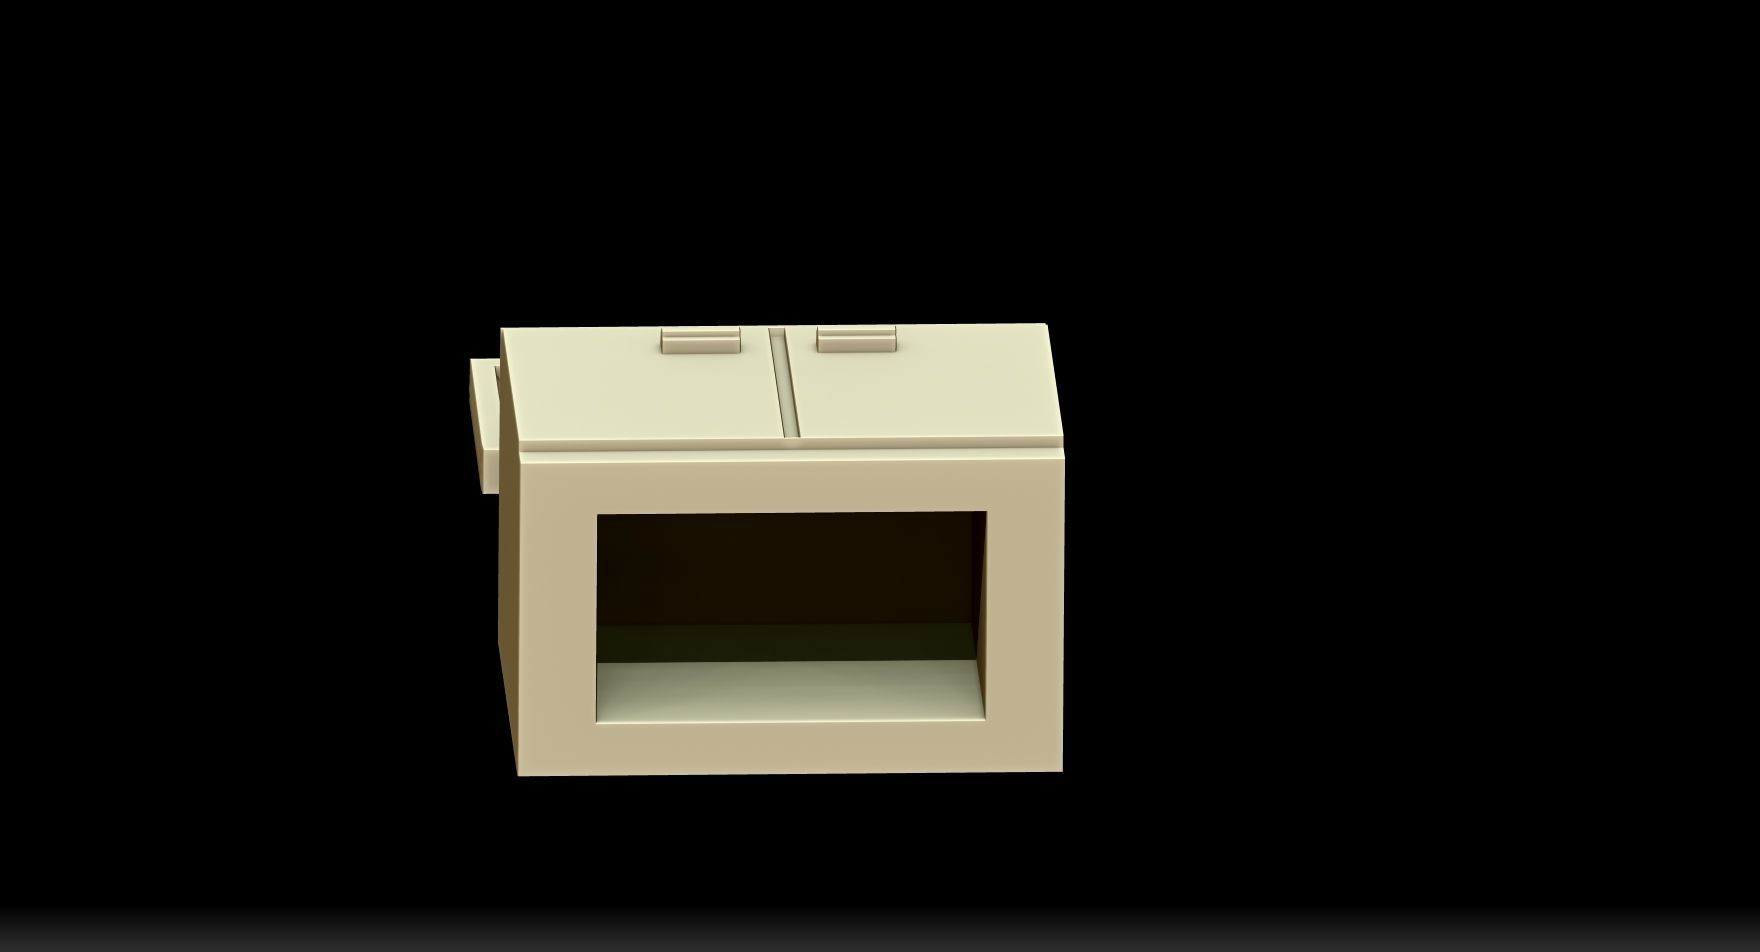 Meuble 3d Meuble Tv 3d Model 3d Printable Stl Cgtrader